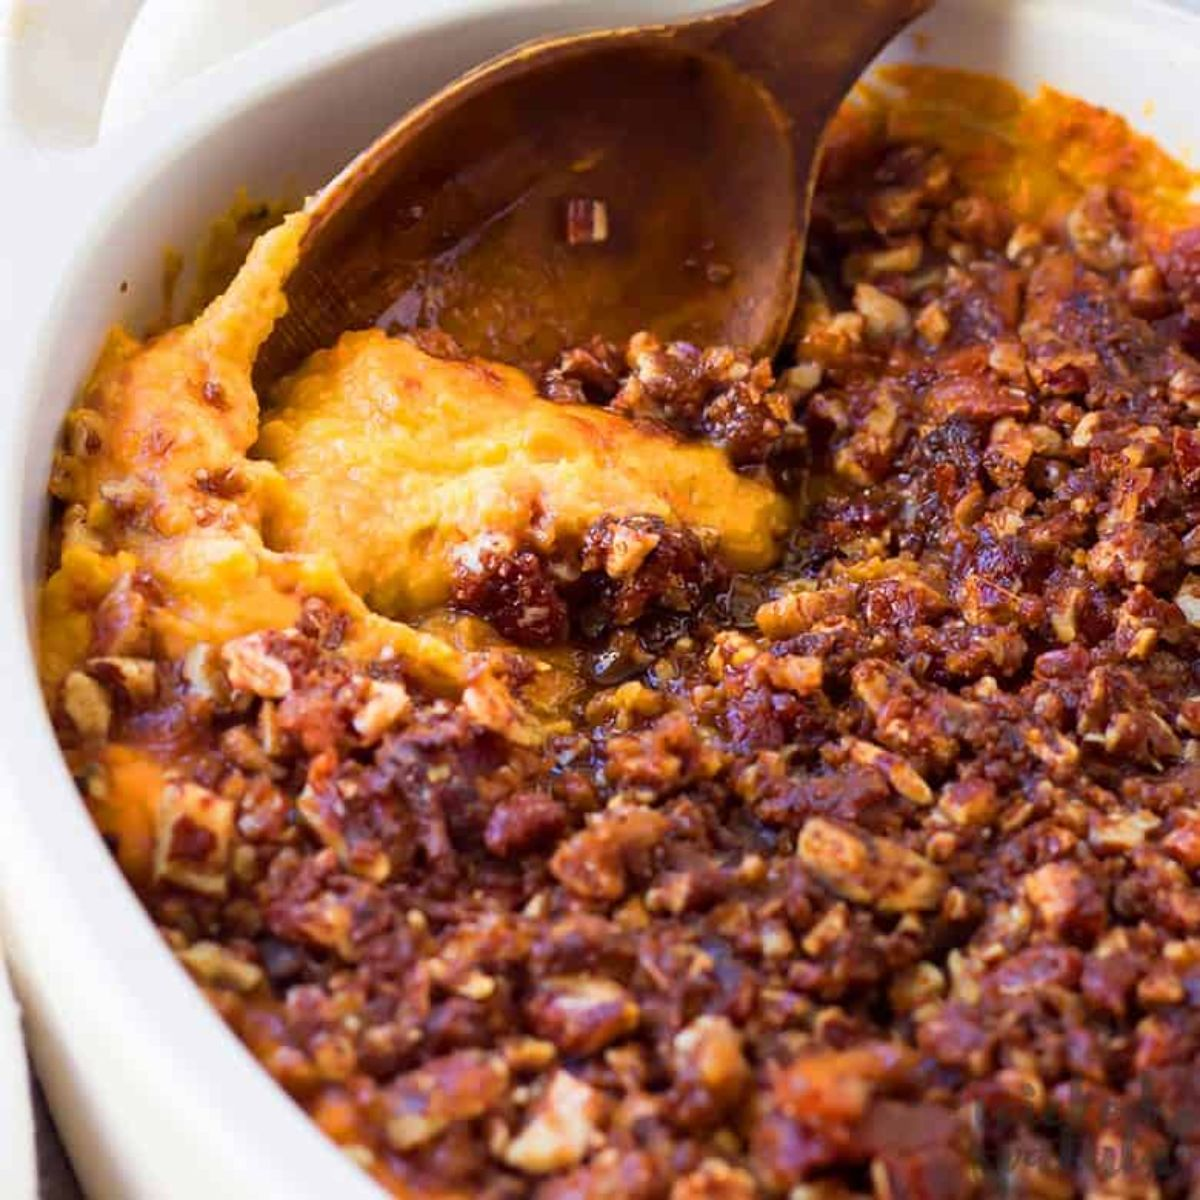 a partial shot of a casserole dish filled with sweet potato casserole, a wooden spoon is sticking out of it